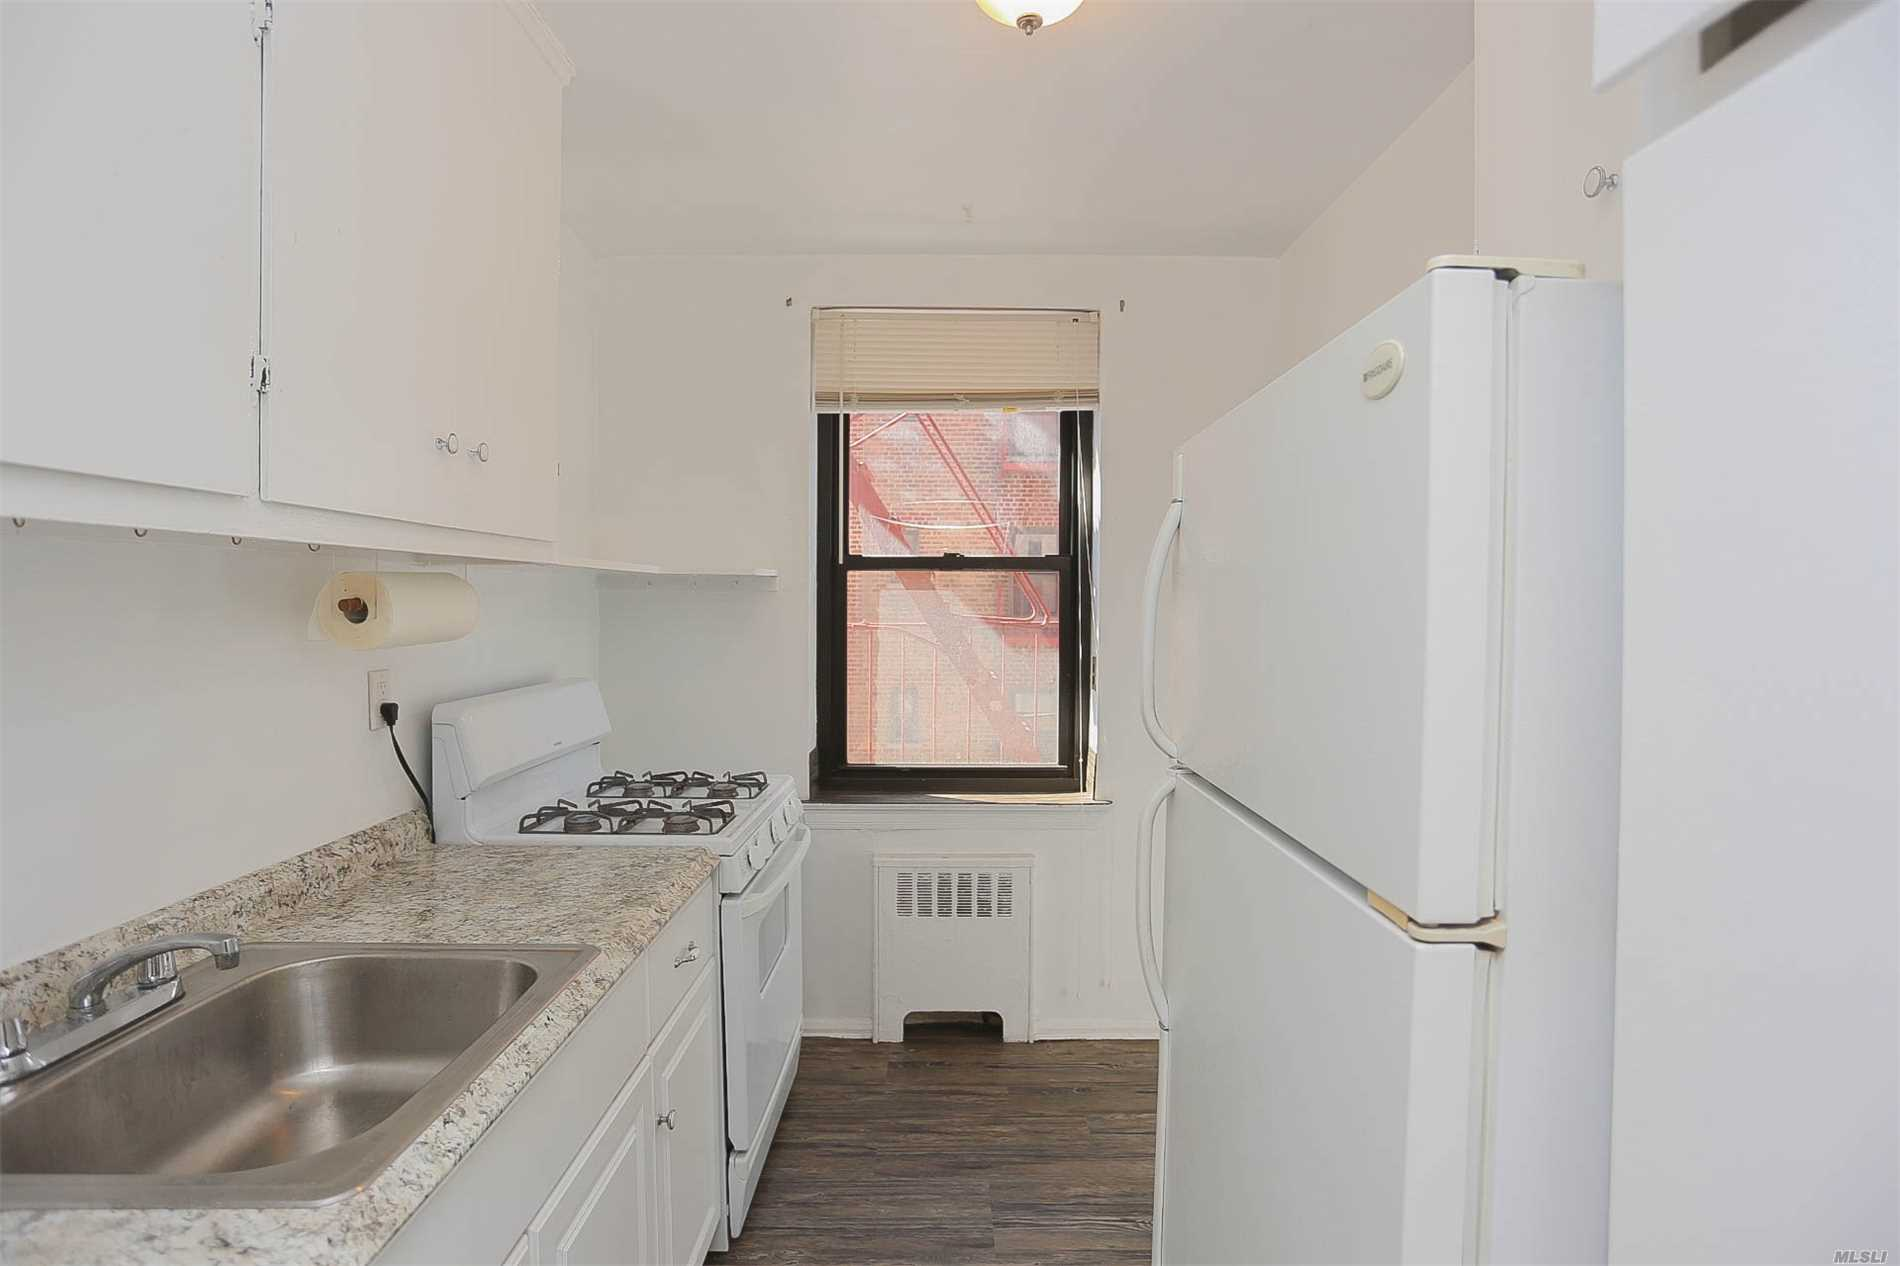 Spacious 1 Bedroom Coop In East Elmhurst. This Apt Feat A Windowed Kitchen And A Spacious Bedroom And Living Room W.Large Windows. This Sought After Development Features Laundry And Management On Site. Retail Shops, Restaurants, Grocery, Entertainment On Northern Blvd, 1 Block Up. Q66 Bus Line To Queens Plaza